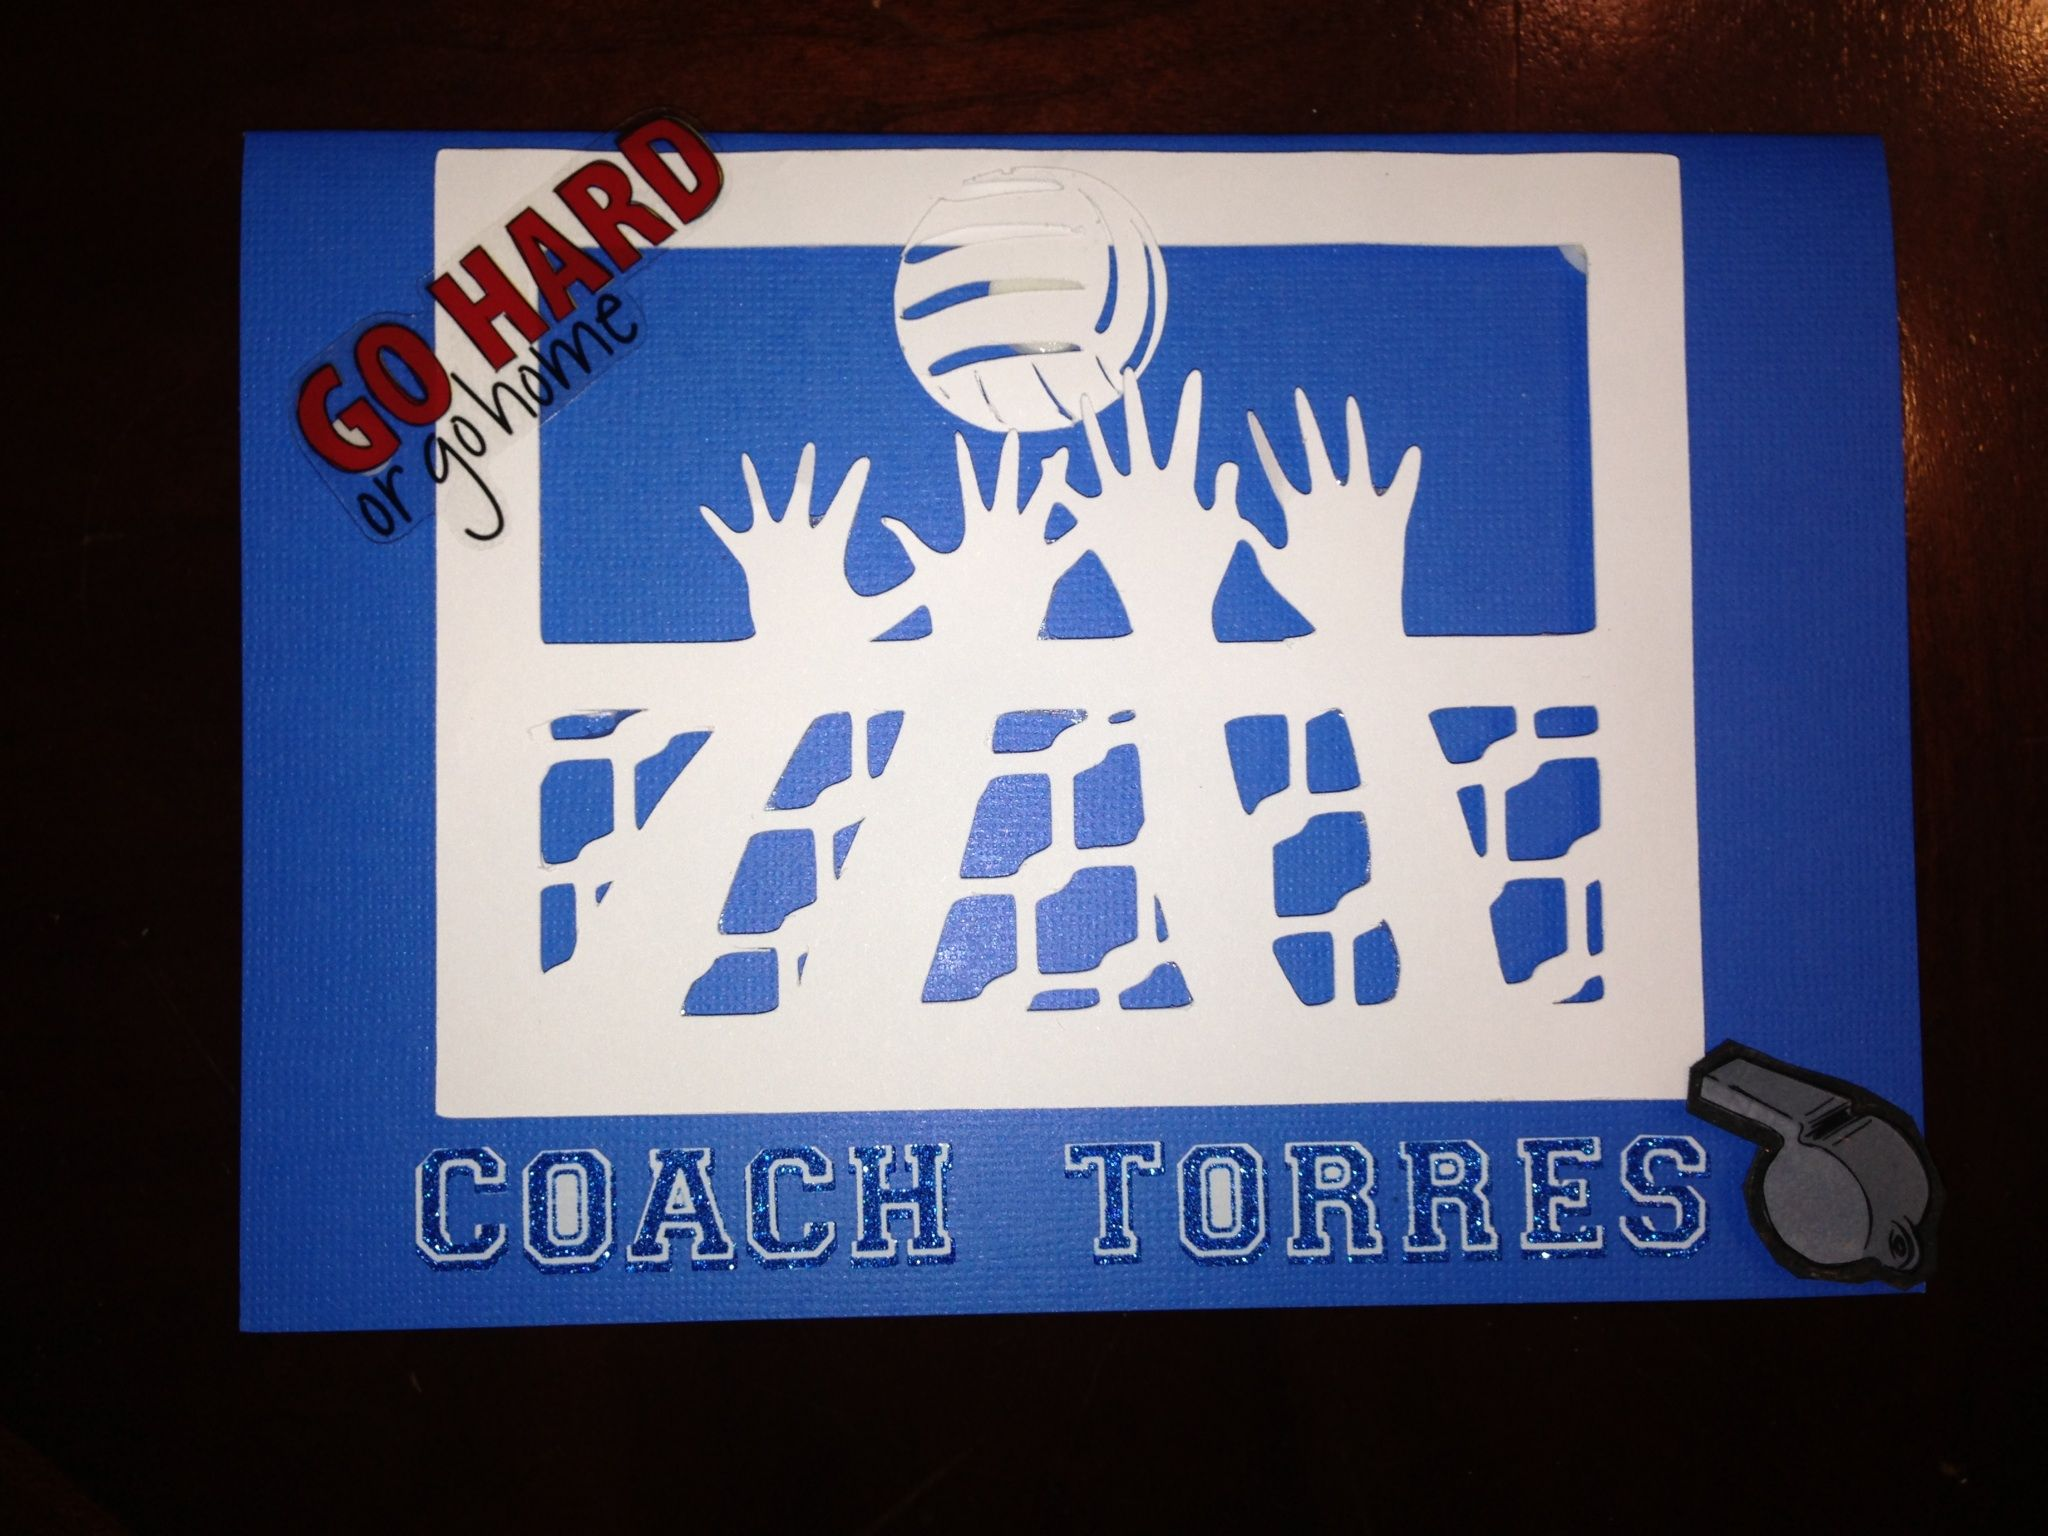 Volleyball Coach Thank You Card Volleyball Coach Gifts Coaching Volleyball Coach Gifts